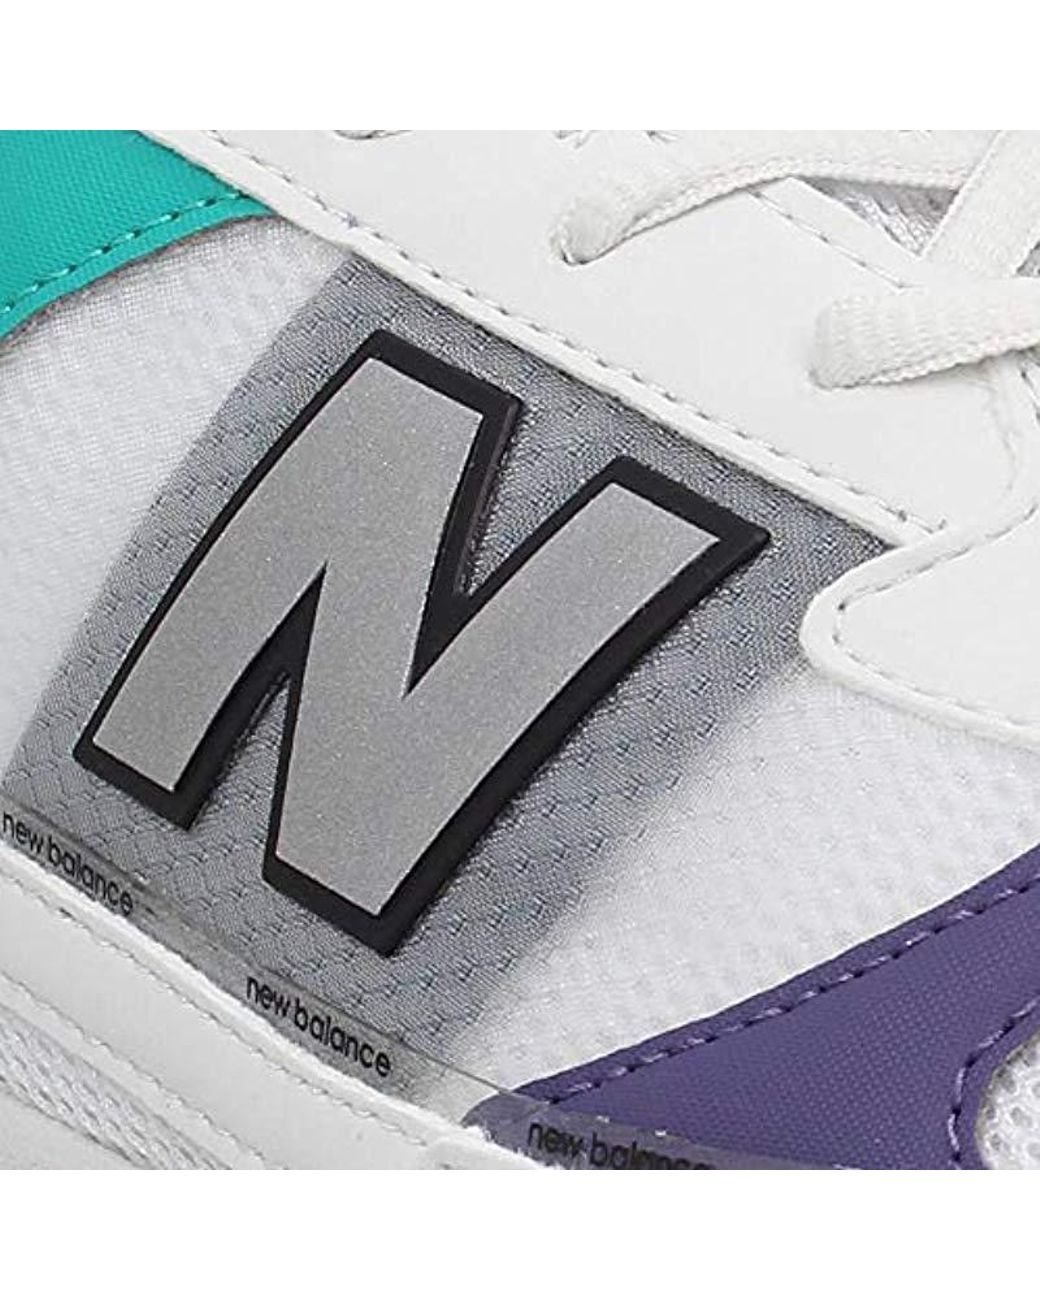 In Men White New Balance D Msxrc Lyst Sneakers For vYgIf76by